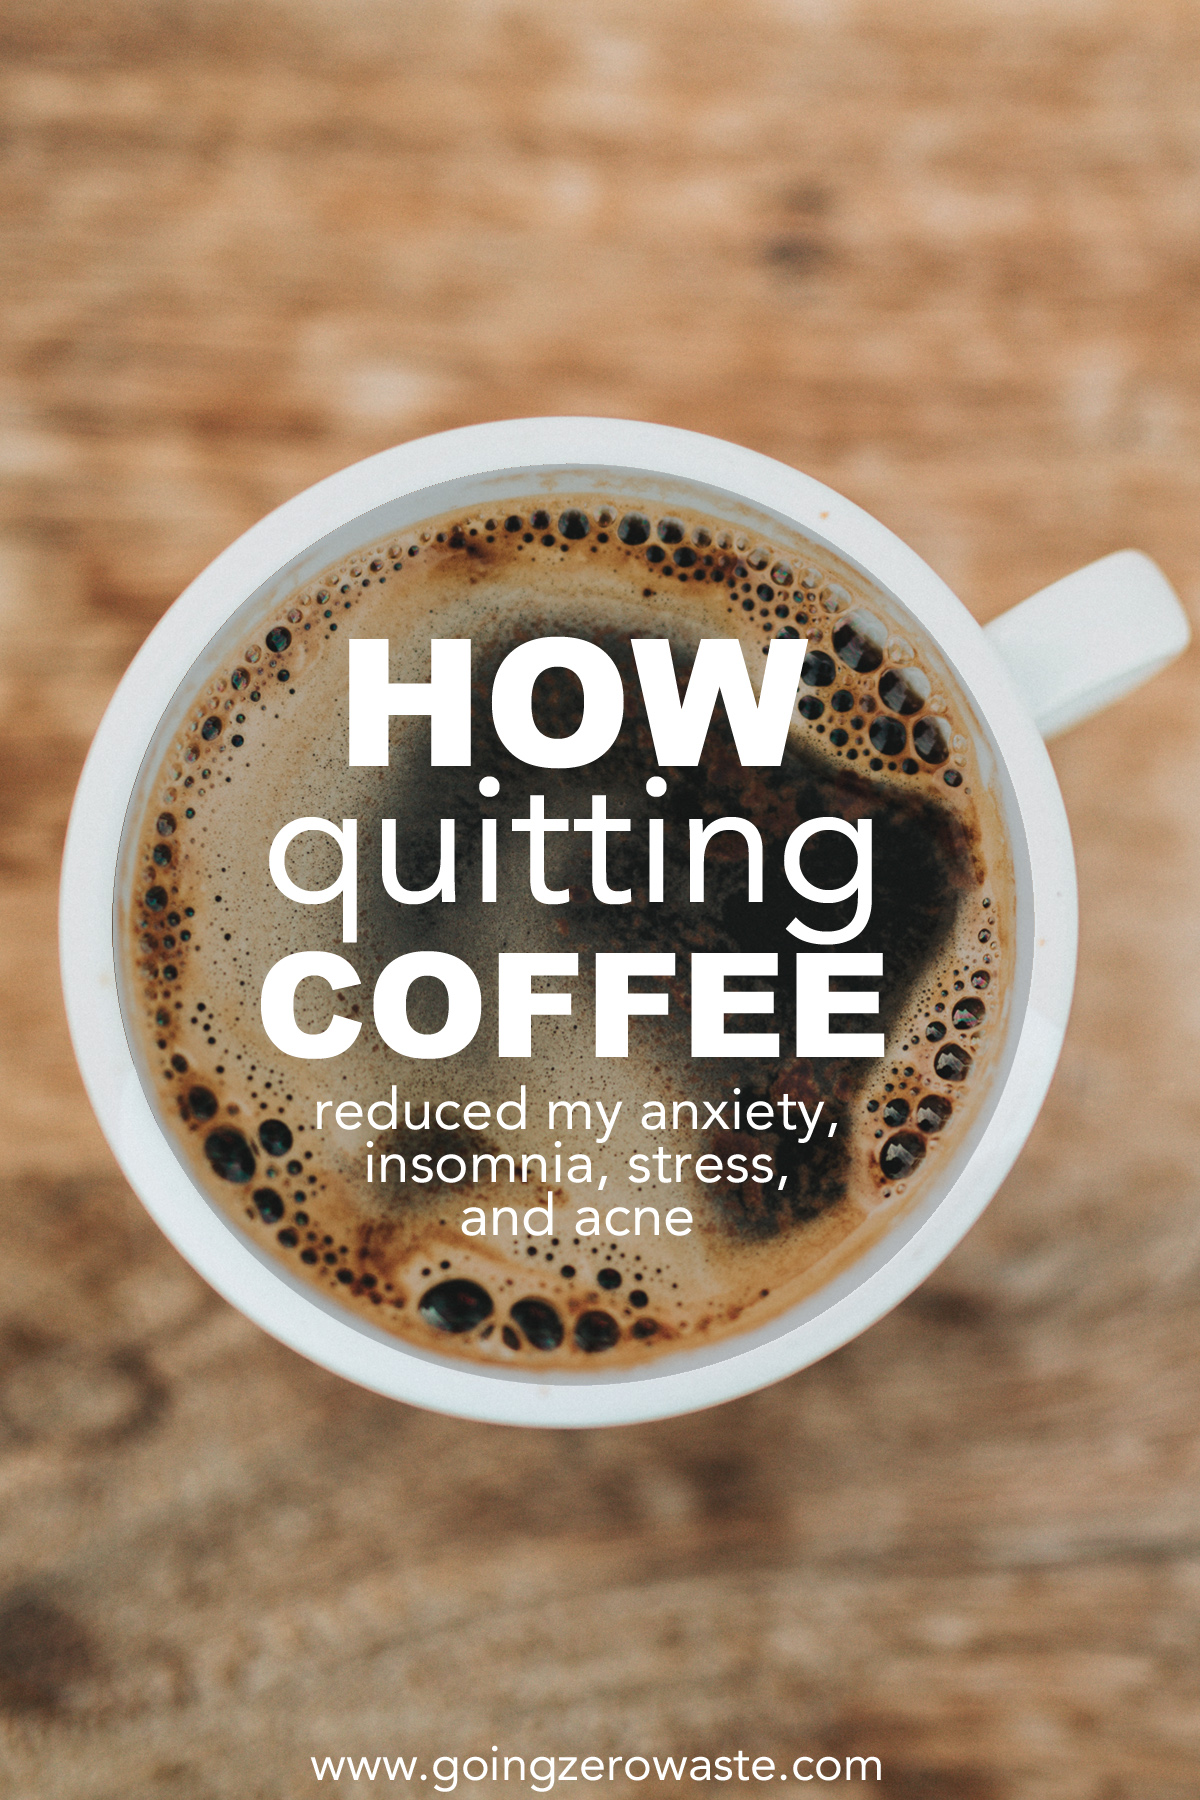 How to quite coffee and caffeine and how it reduced my anxiety, insomnia, stress, and acne from www.goingzerowaste.com #coffee #stress #acne